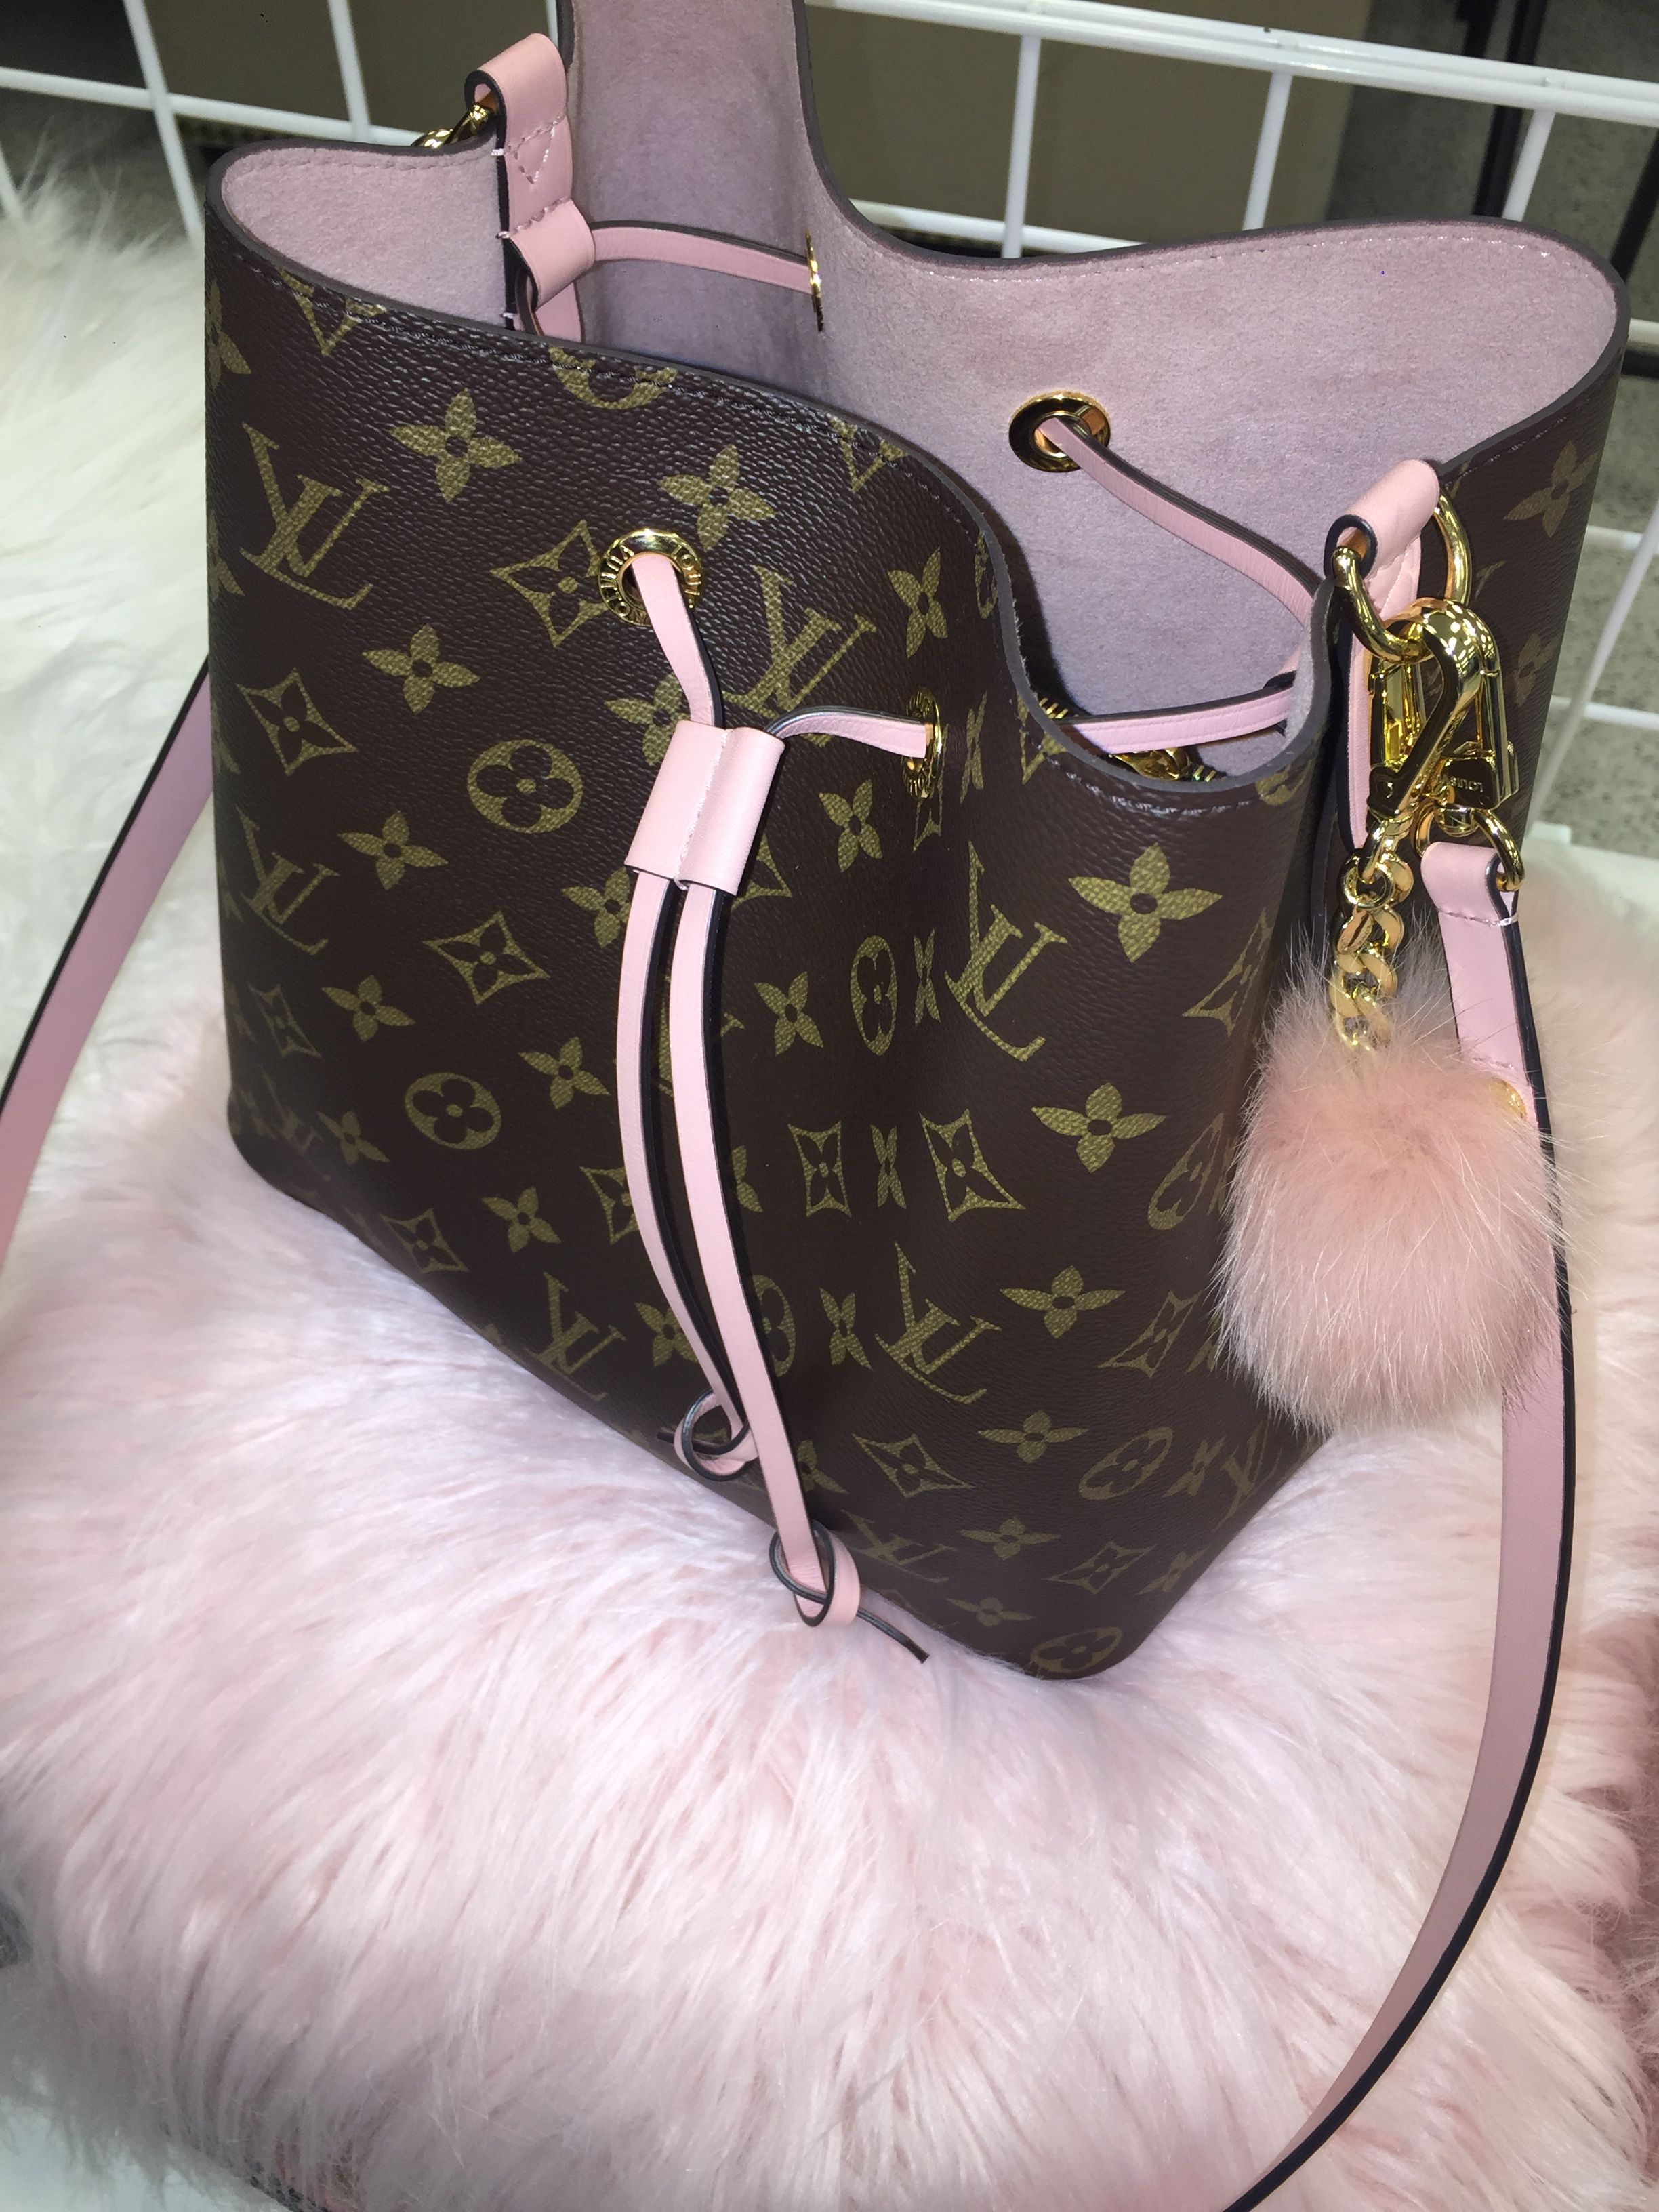 a4cec8c60f3d Louis Vuitton 💃🏽 for more ⚡ ❣ Follow my daily 📌z to stay on🔝 of the  ÊVERŸTHÎÑG ❤ Chanel Monroe 💋